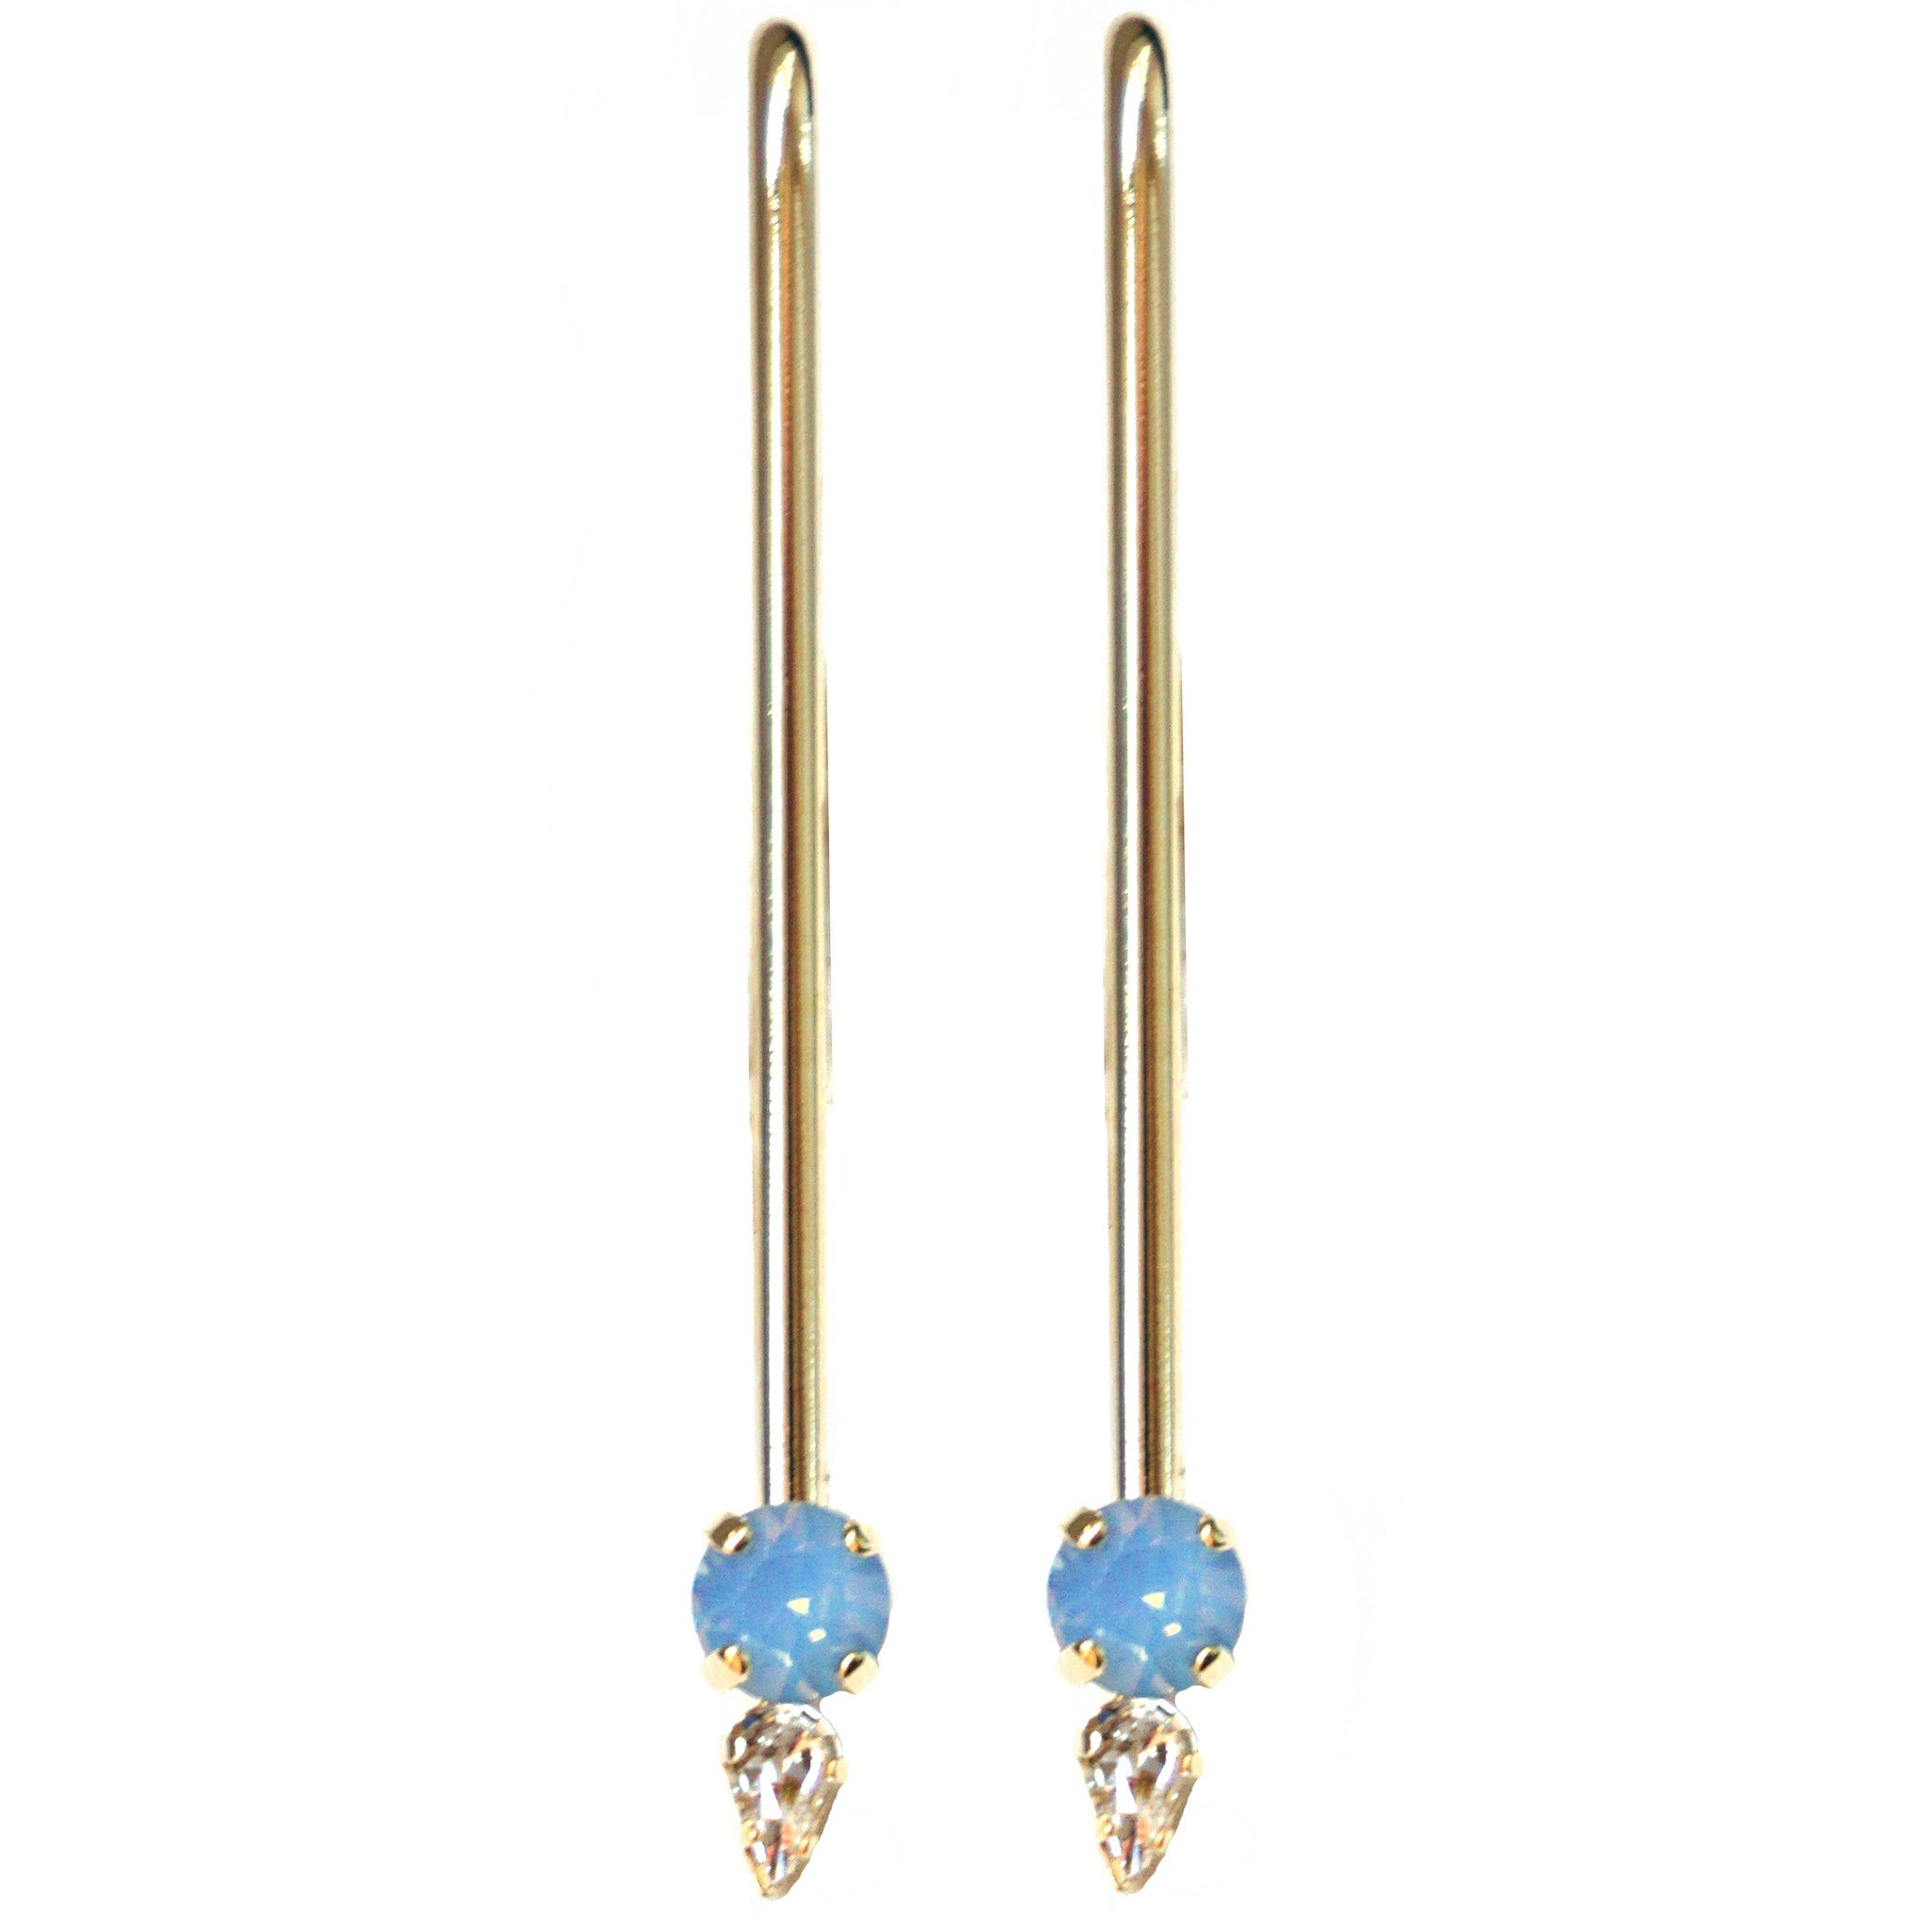 CAROLYN COLBY - GOLD GEM DROP LONG EARRINGS